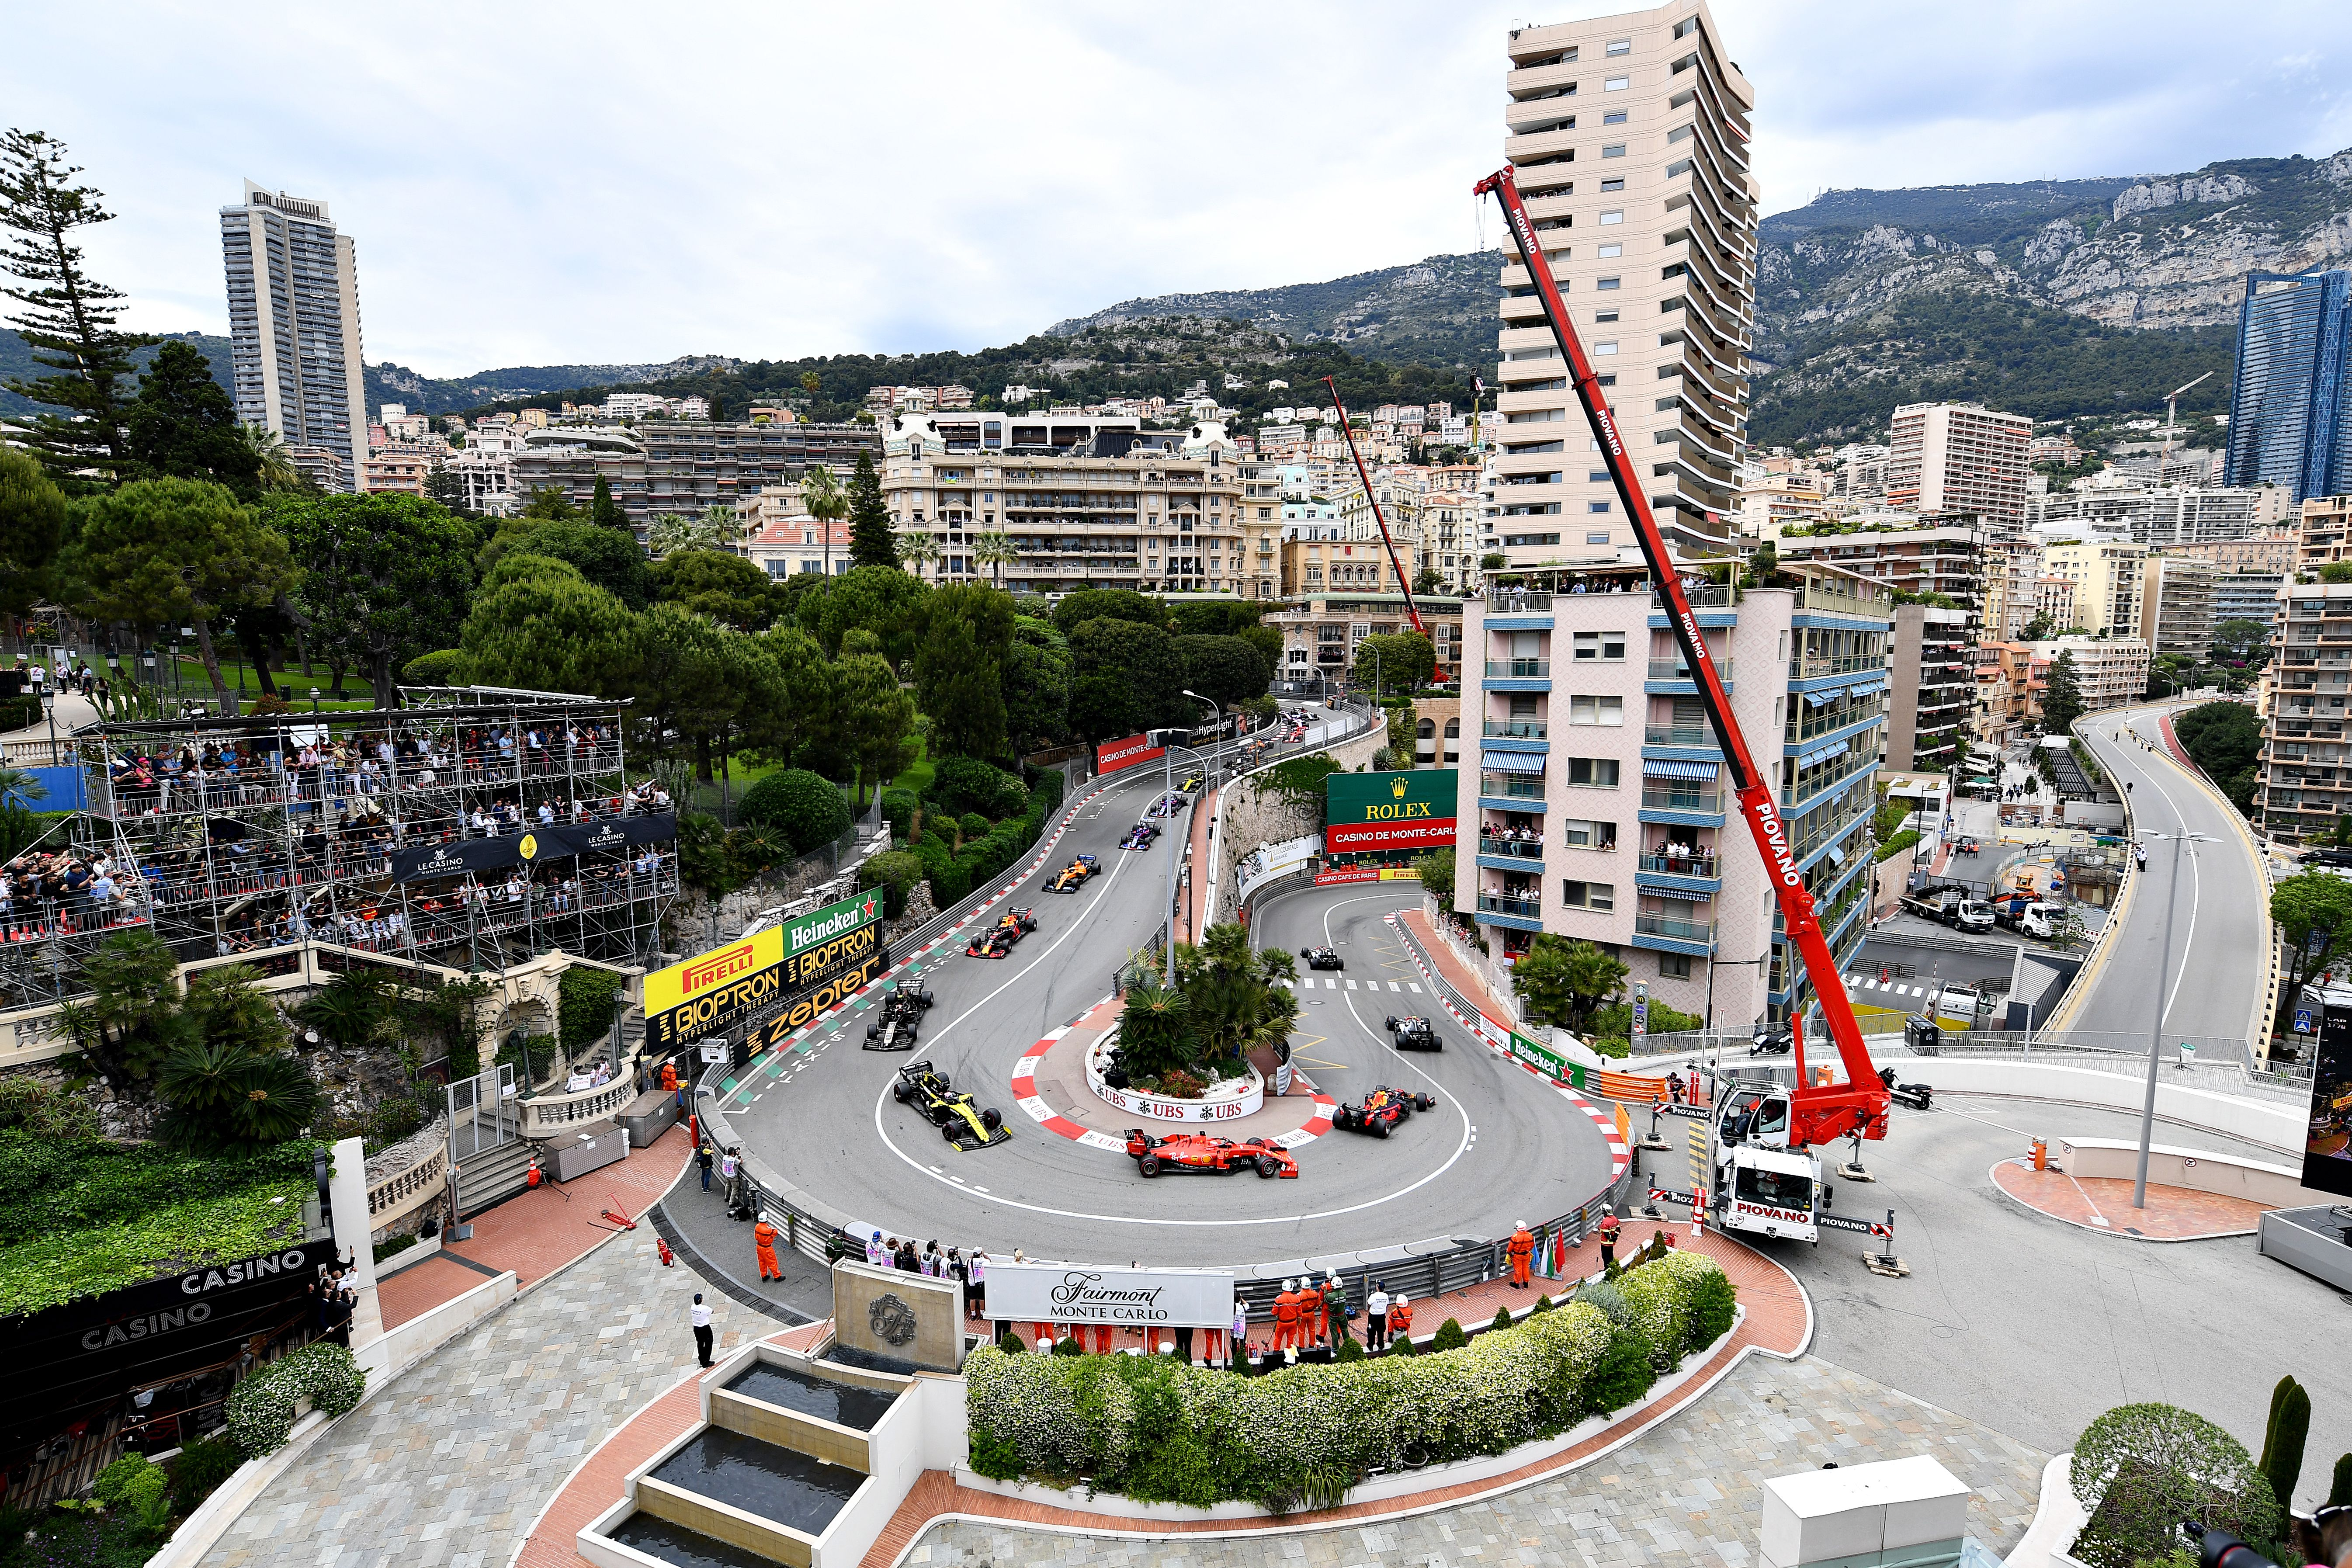 The hairpin section of the Monte Carlo GP